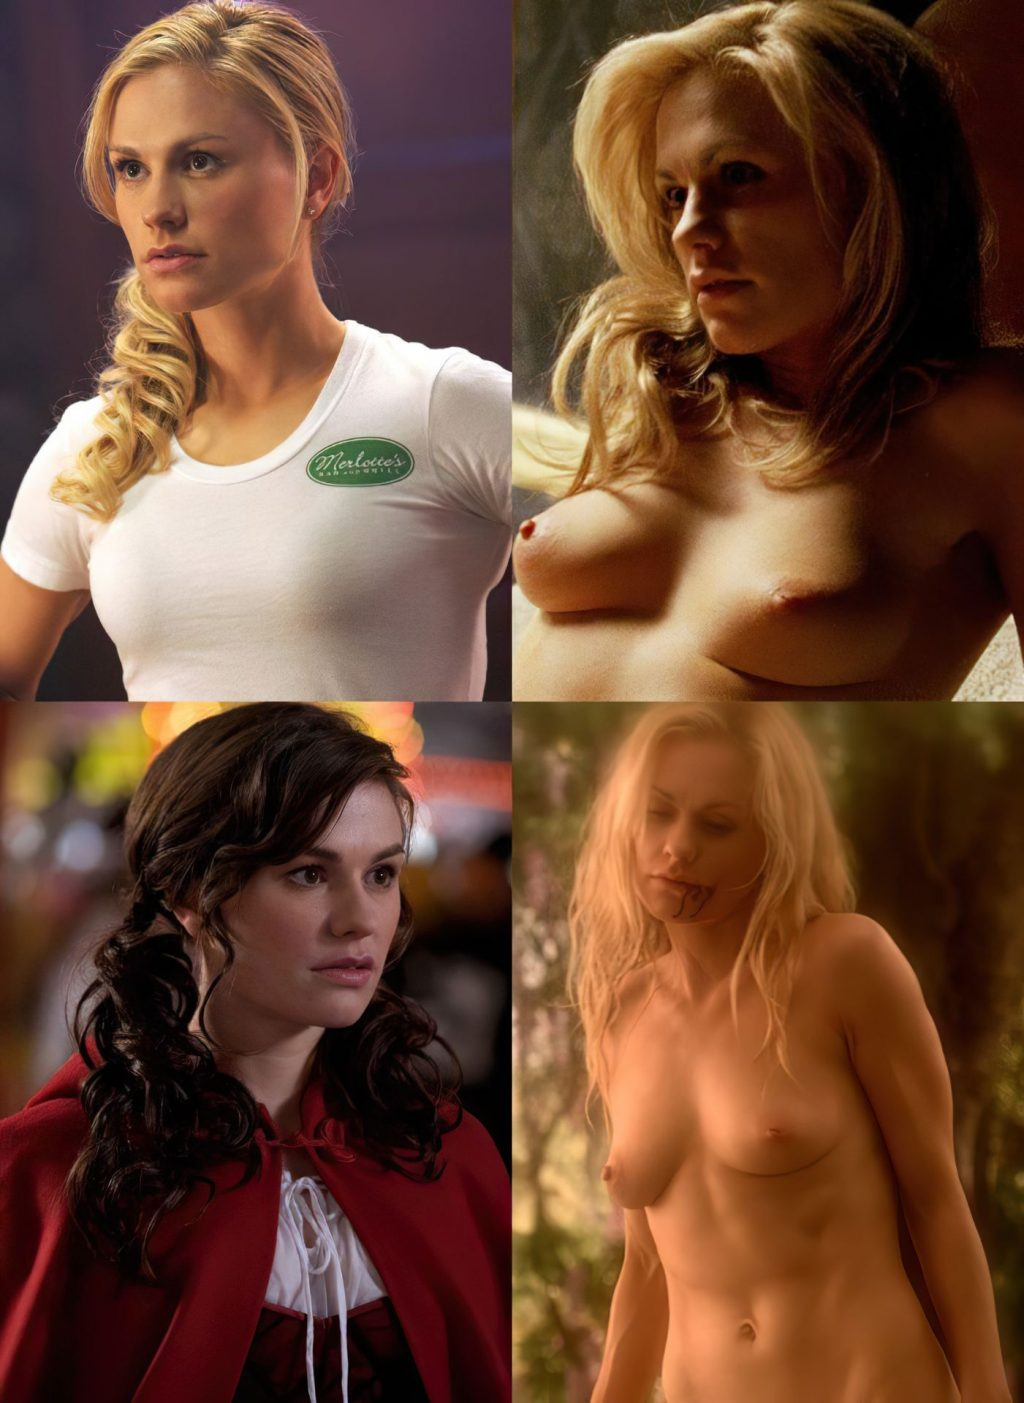 Anna Paquin's Body is Extremely Underrated